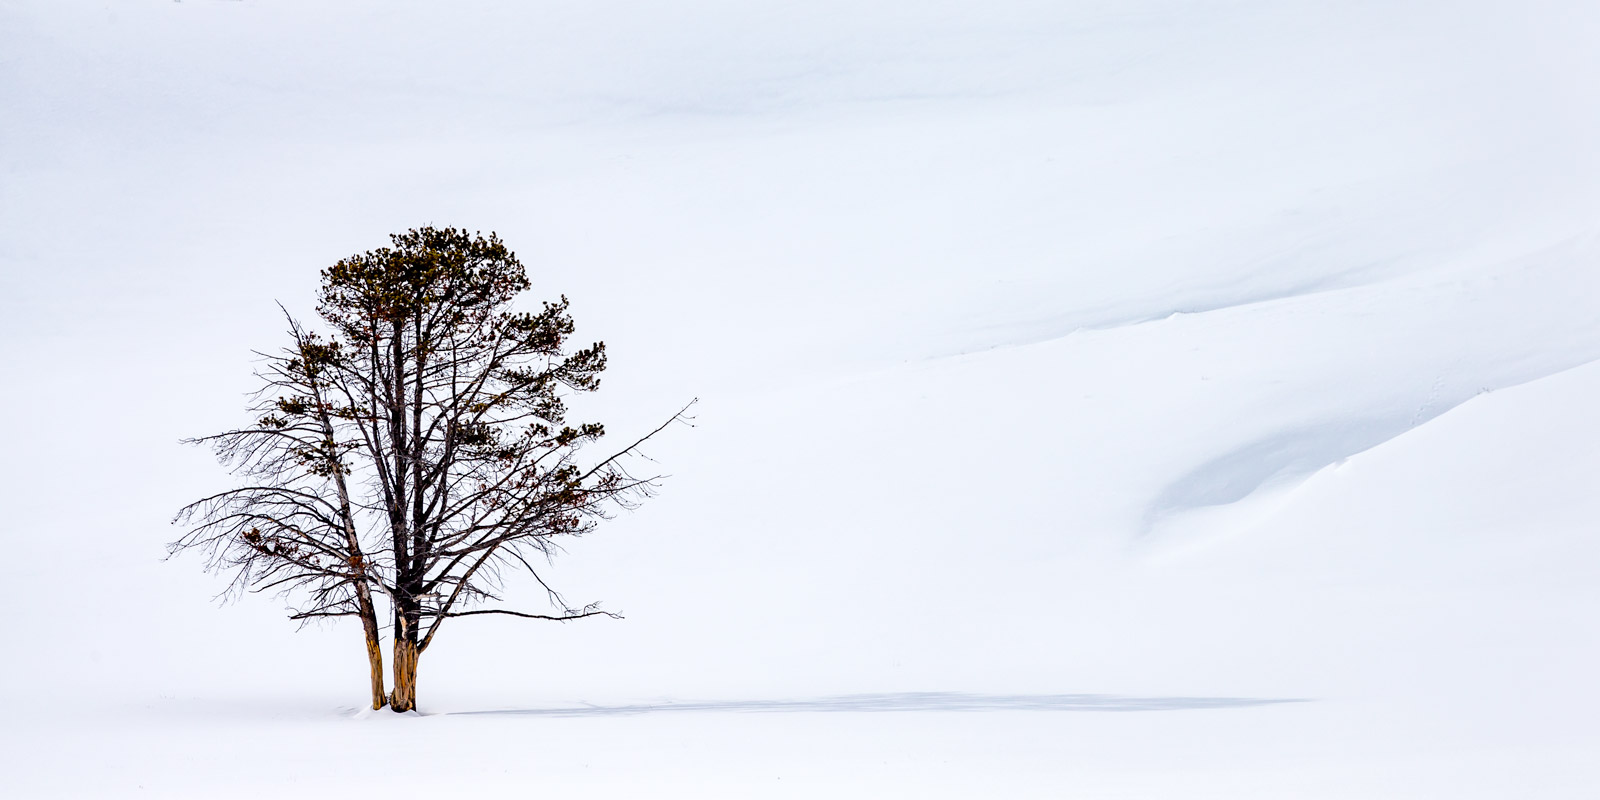 Wyoming, Yellowstone, Winter, Hayden Valley, Lone Tree, Tree, limited edition, photograph, fine art, landscape, photo